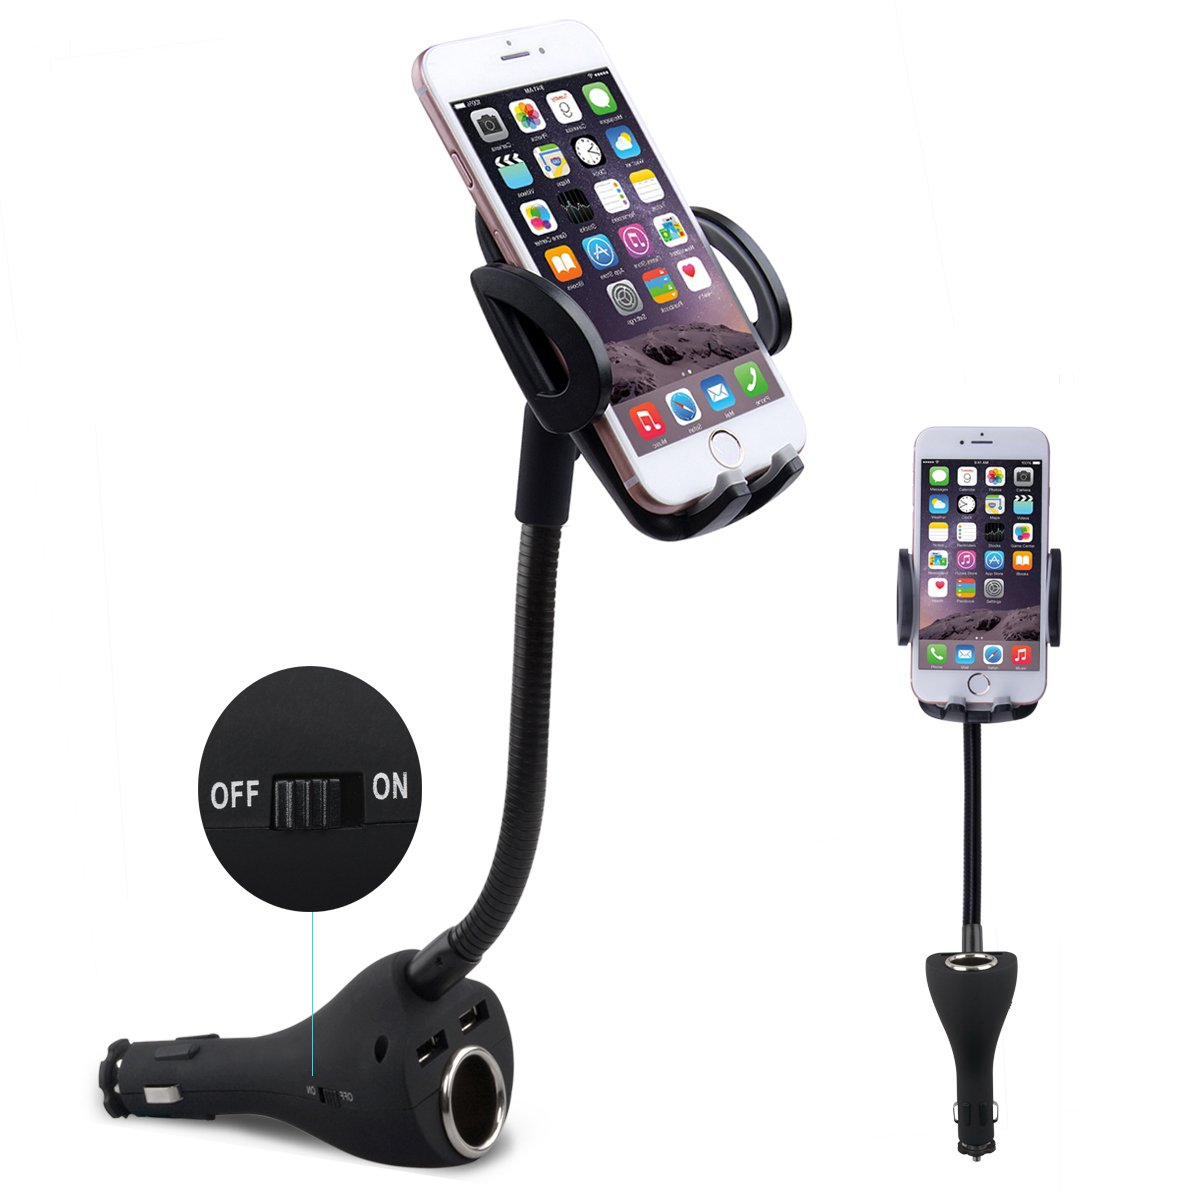 Te-Rich 3-in-1 Universal Car Mount Holder Phone Charger Cigarette Lighter Power Adapter for iPhone, Samsung Galaxy and More Smartphones (1 Power Outlet, Dual USB, 4.8A Max)